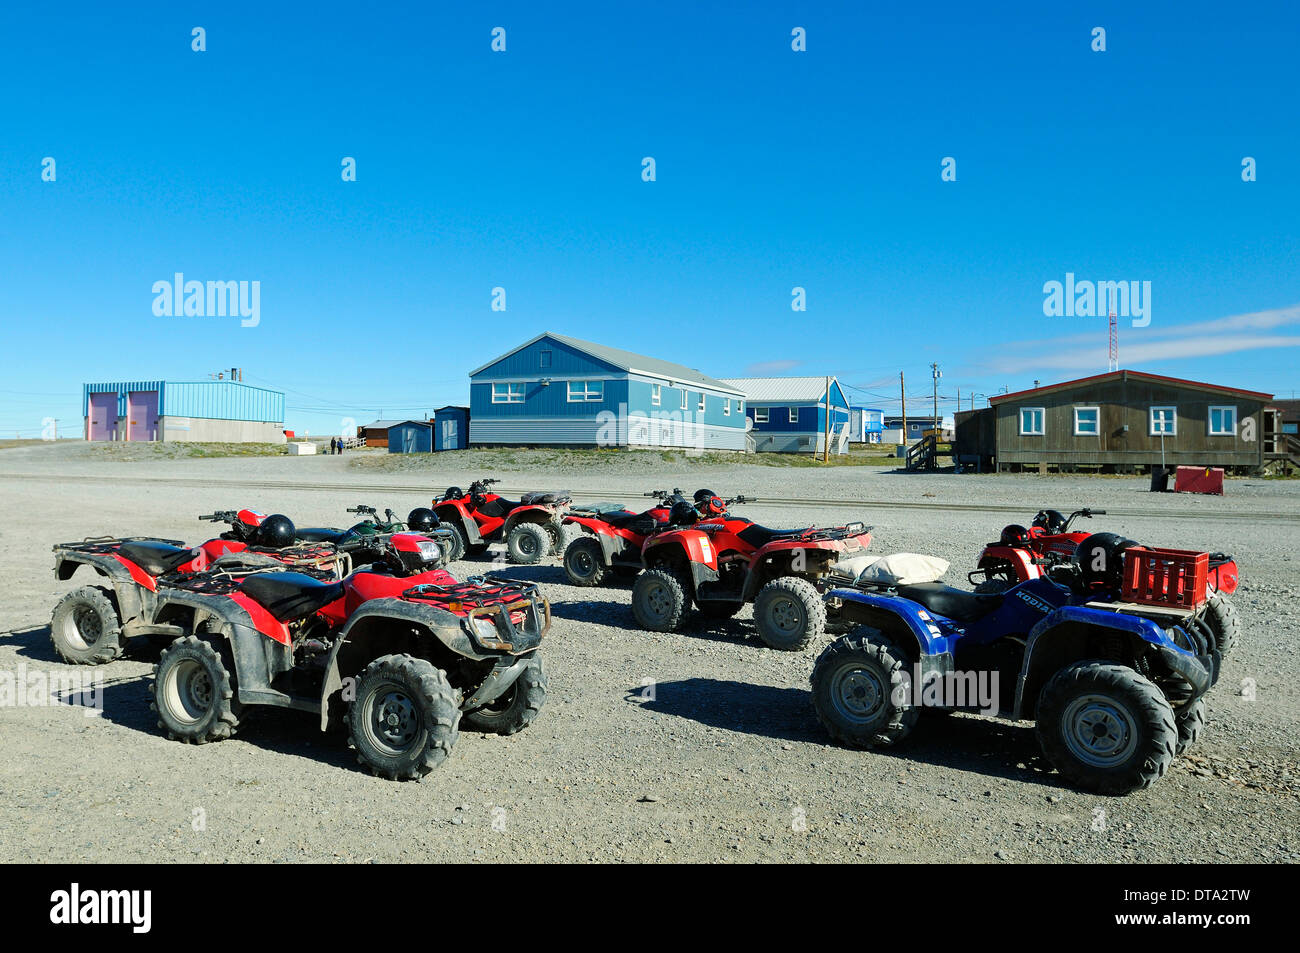 Car park with several quad bikes, ATV, in the Inuit village of Ulukhaktok, Victoria Island, formerly Holman Island - Stock Image